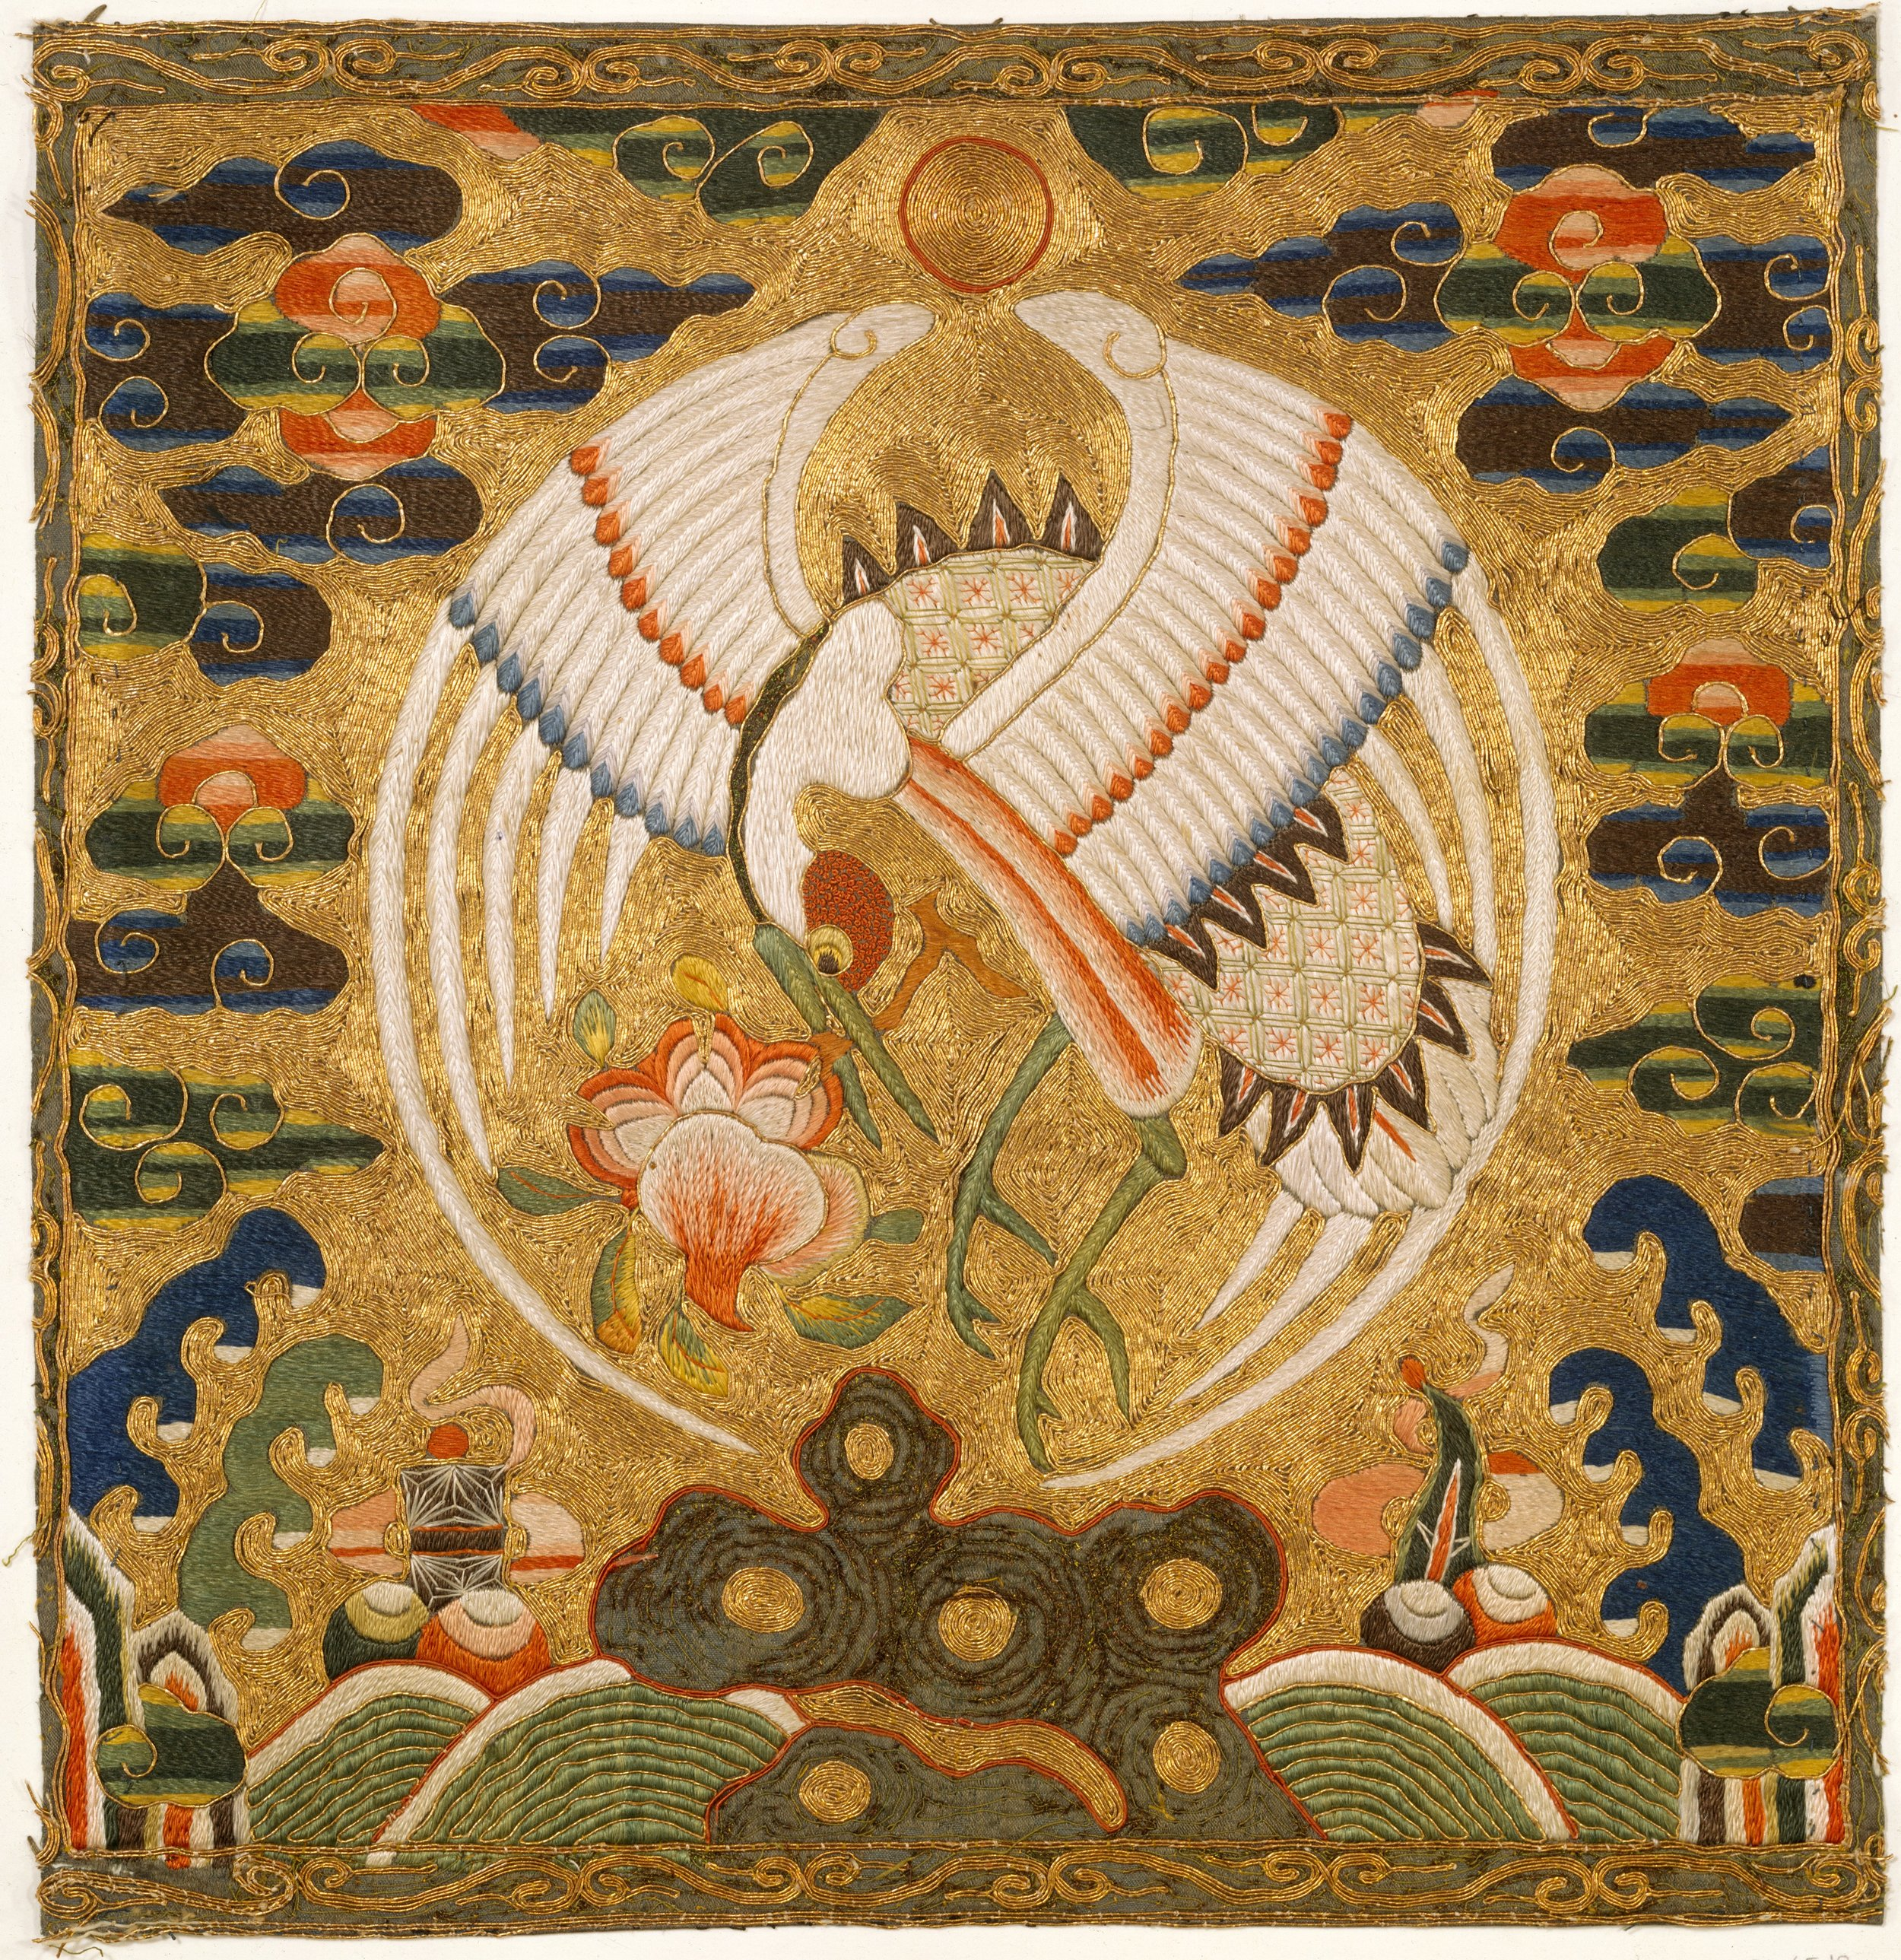 Crane badge (1st civil rank) from the Qing dynasty, late 17th–early 18th century. In the collection of the Met.